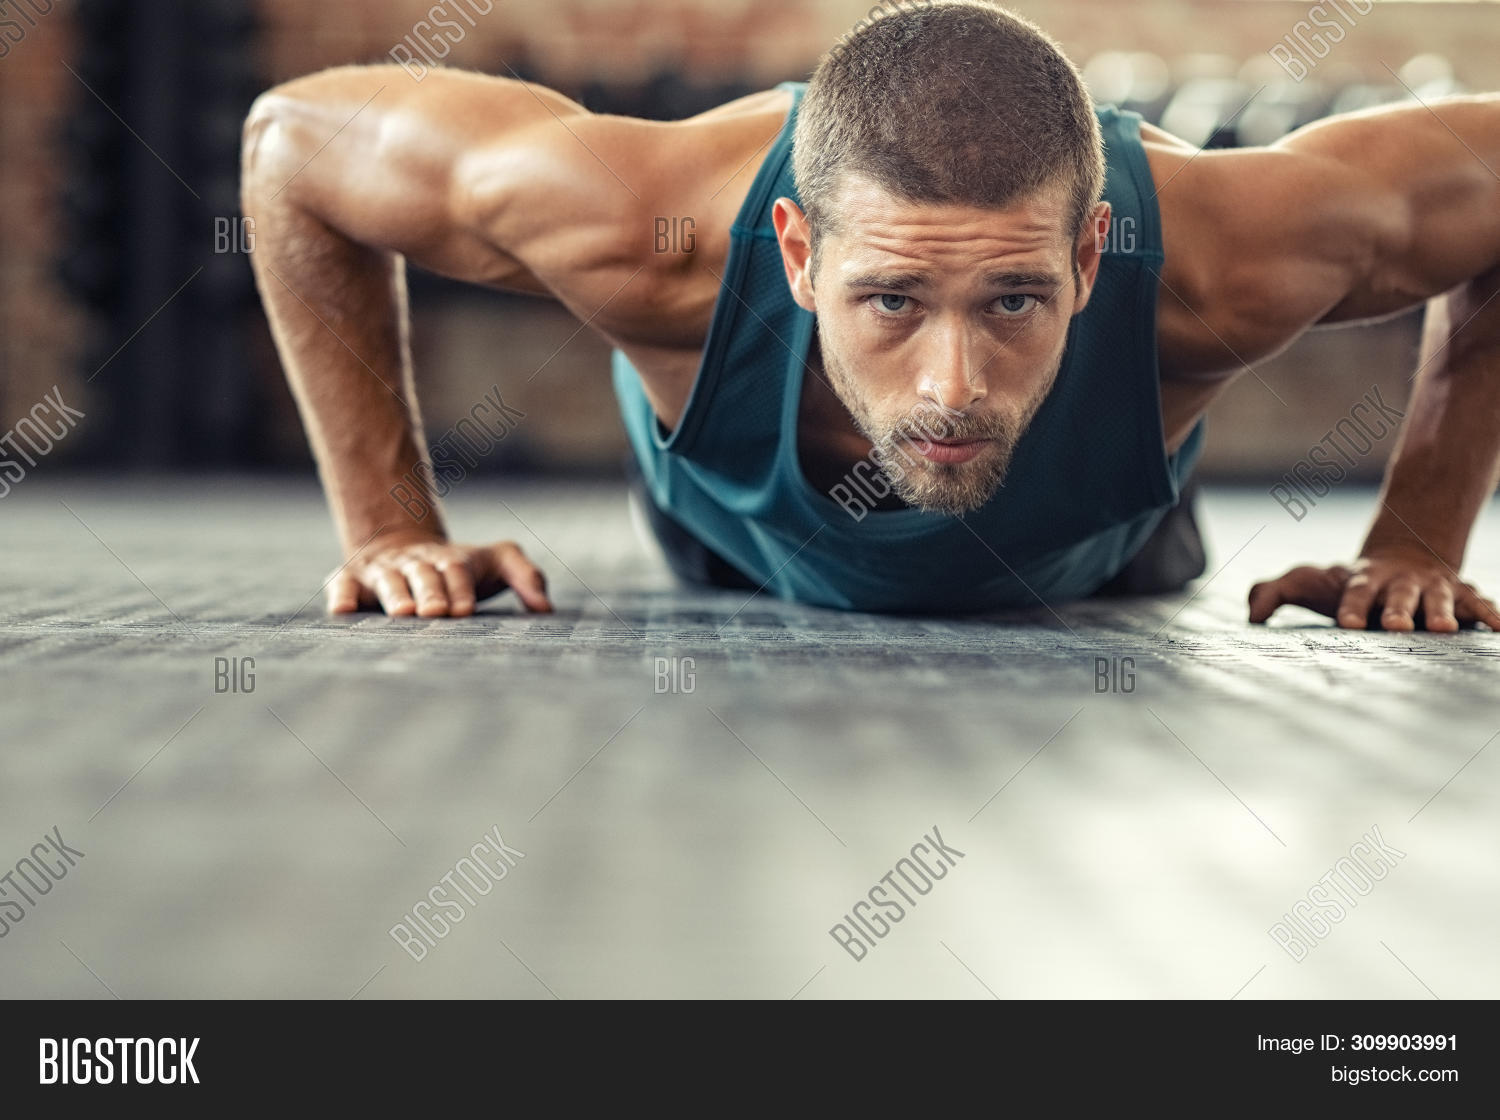 abs,active,athlete,athletic,biceps,body,challenge,concentration,copy space,dedication,determination,effort face,endurance,endurance training,exercise,fit,fitness,floor,focused,guy,gym,gymnasium,handsome,health,healthy,man,motivation,muscle,muscular,muscular man,one man,people,physical,plank,power,practicing,push up,push up exercise,push ups,push ups man,push-up,pushup,sport,strength,strong,training,up,warmup,workout,young